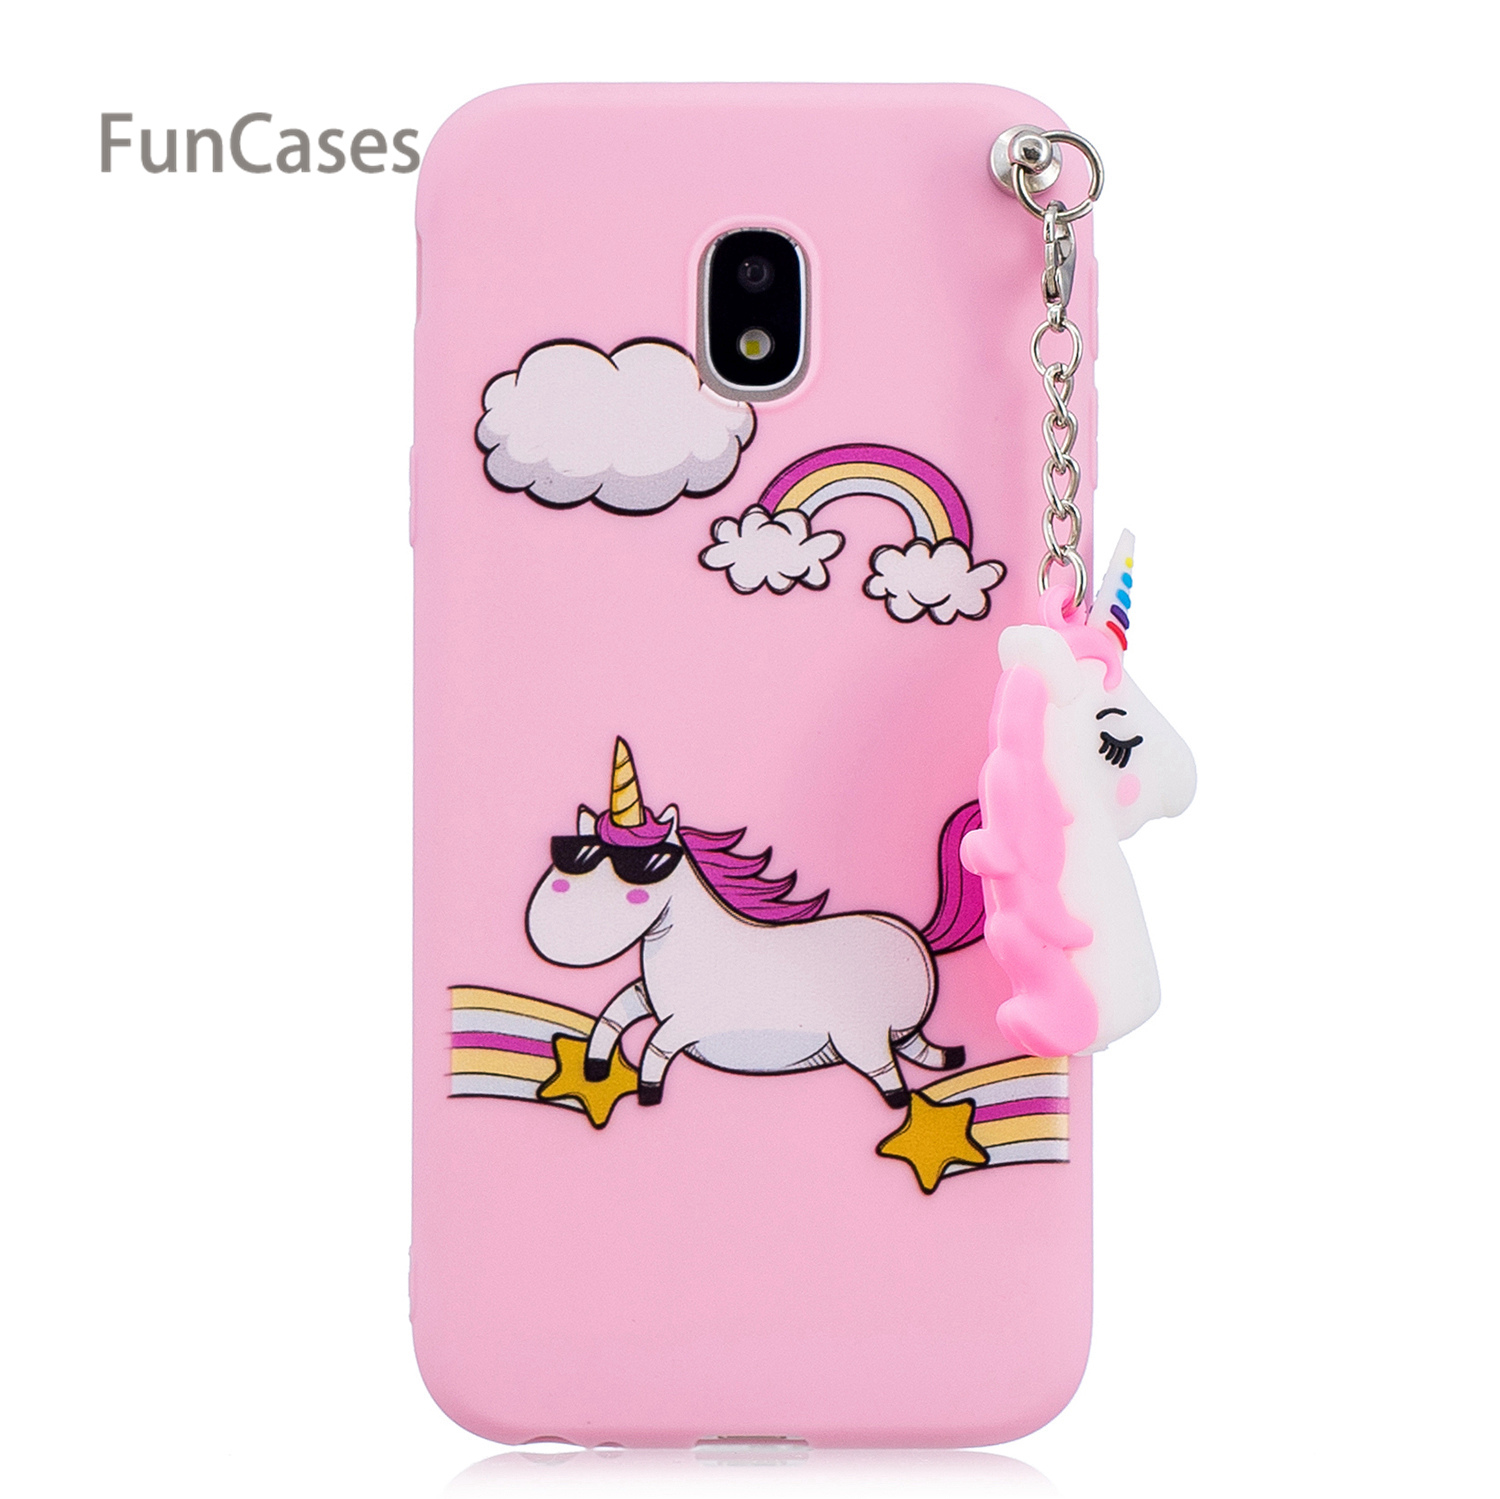 3D Unicorn Phone Case sFor Capa Samsung J730 European Version Soft TPU Telefon Phone Case Samsung Galaxy J7 2017 EU Version